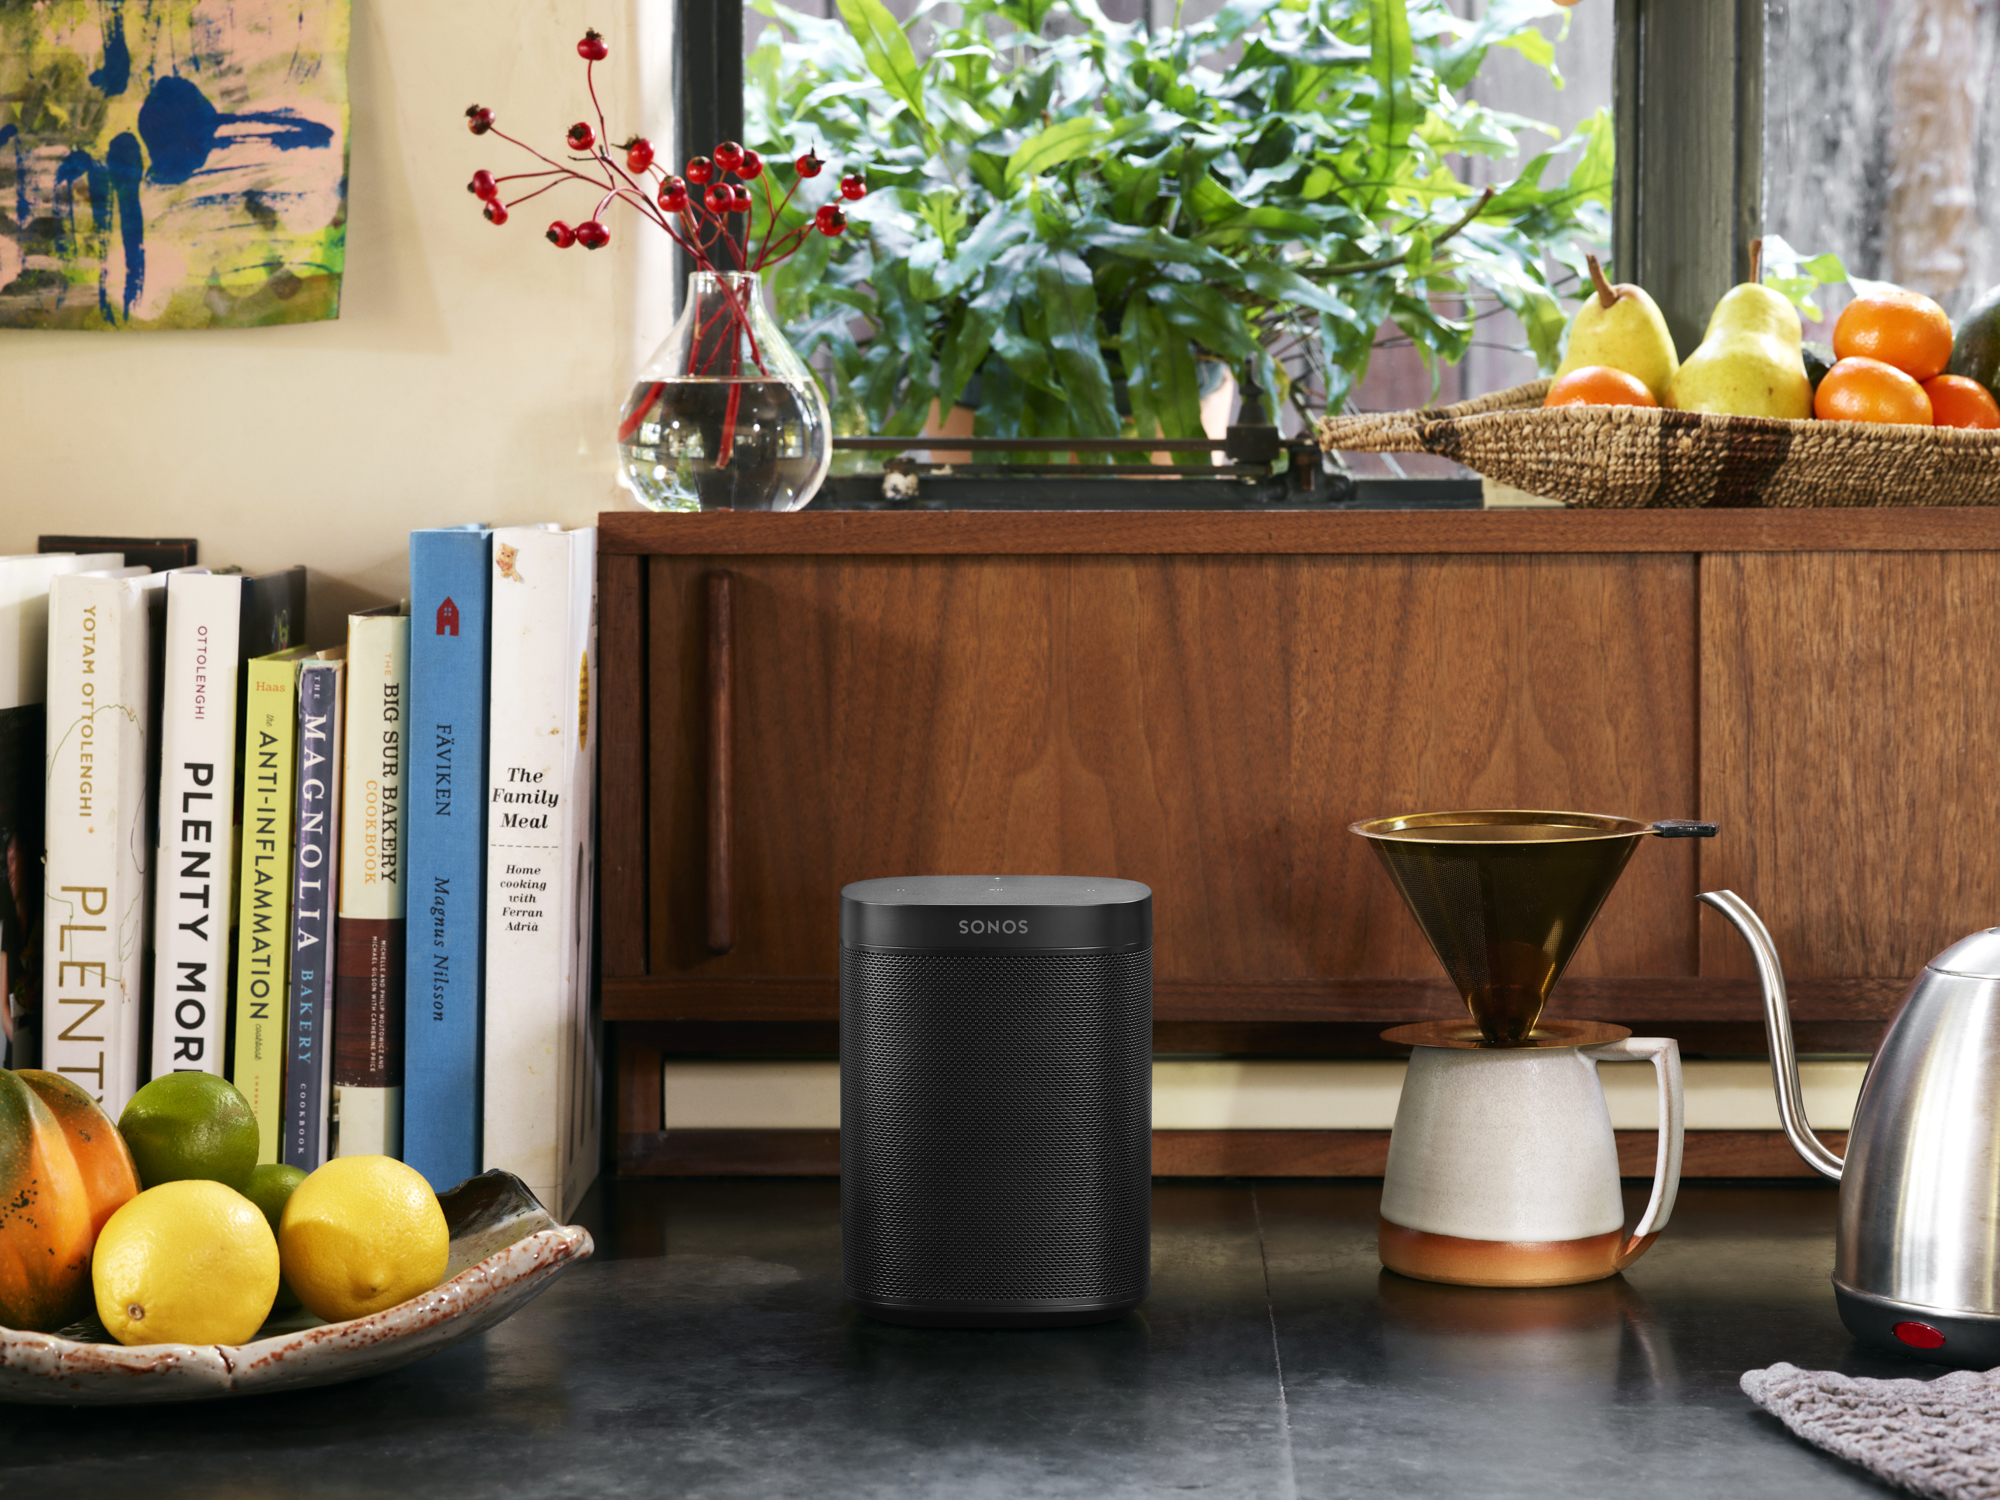 Sonos_Lifestyle_RGB_Small_Kitchen_One_Black.jpg